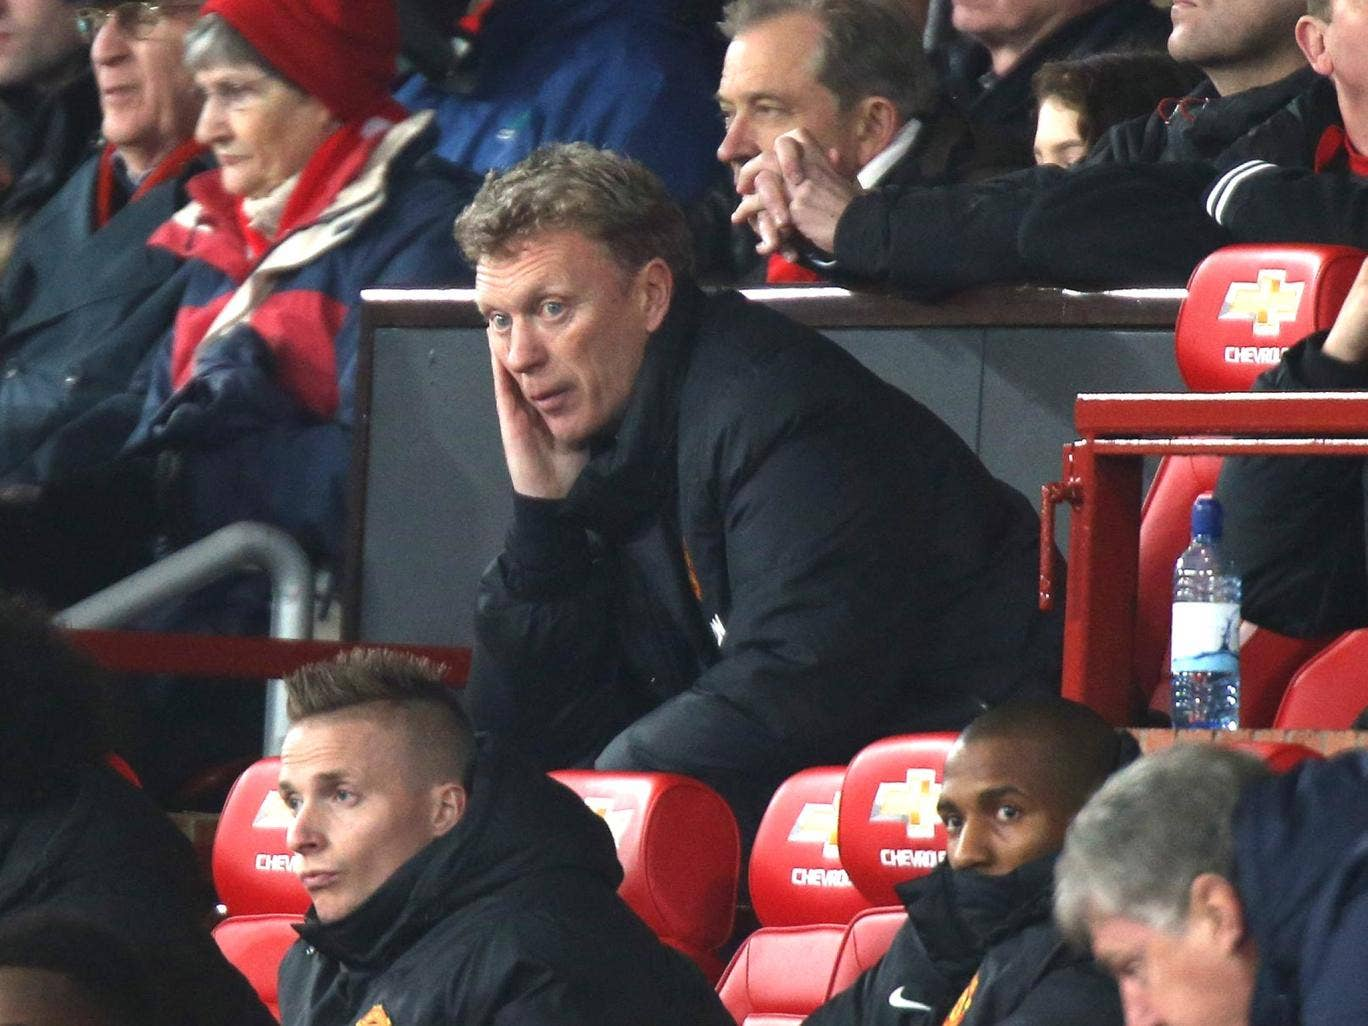 Manchester United will continue to support their beleaguered manager